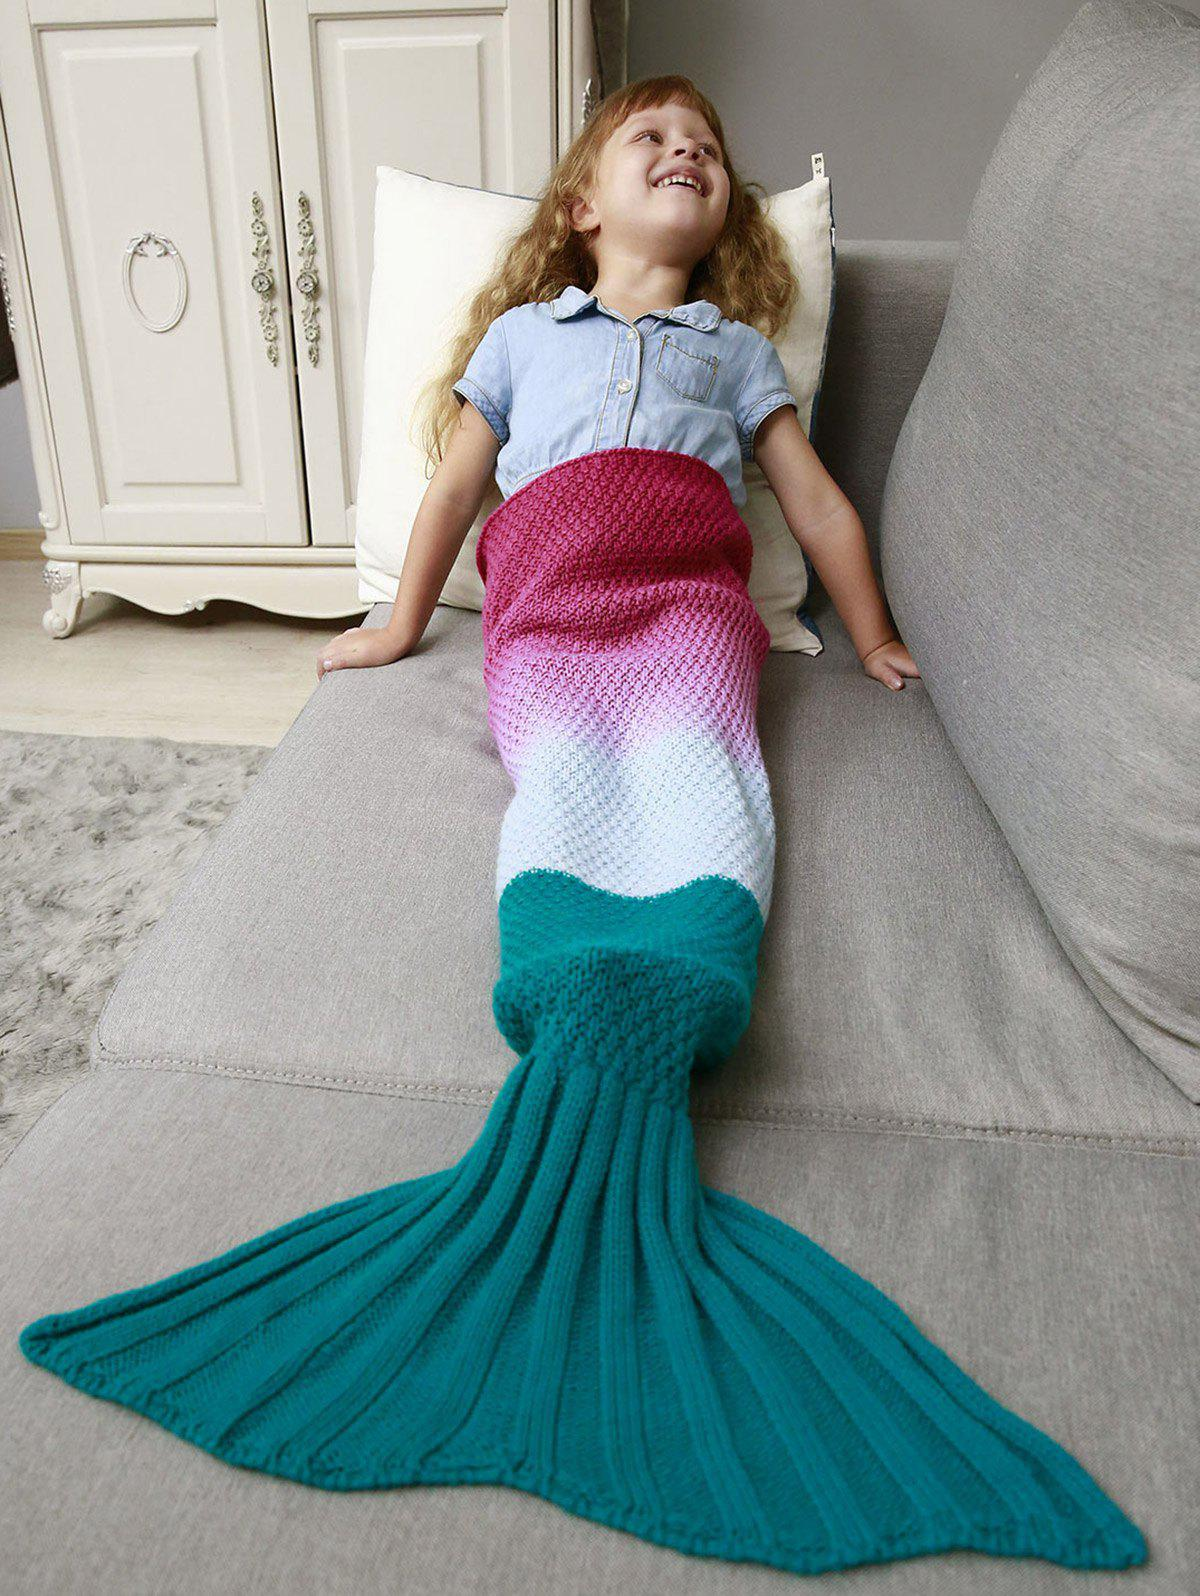 Ombre Chunky Crochet Knit Mermaid Blanket Throw For Kids constant delight miele шампунь жизненная сила 1 л